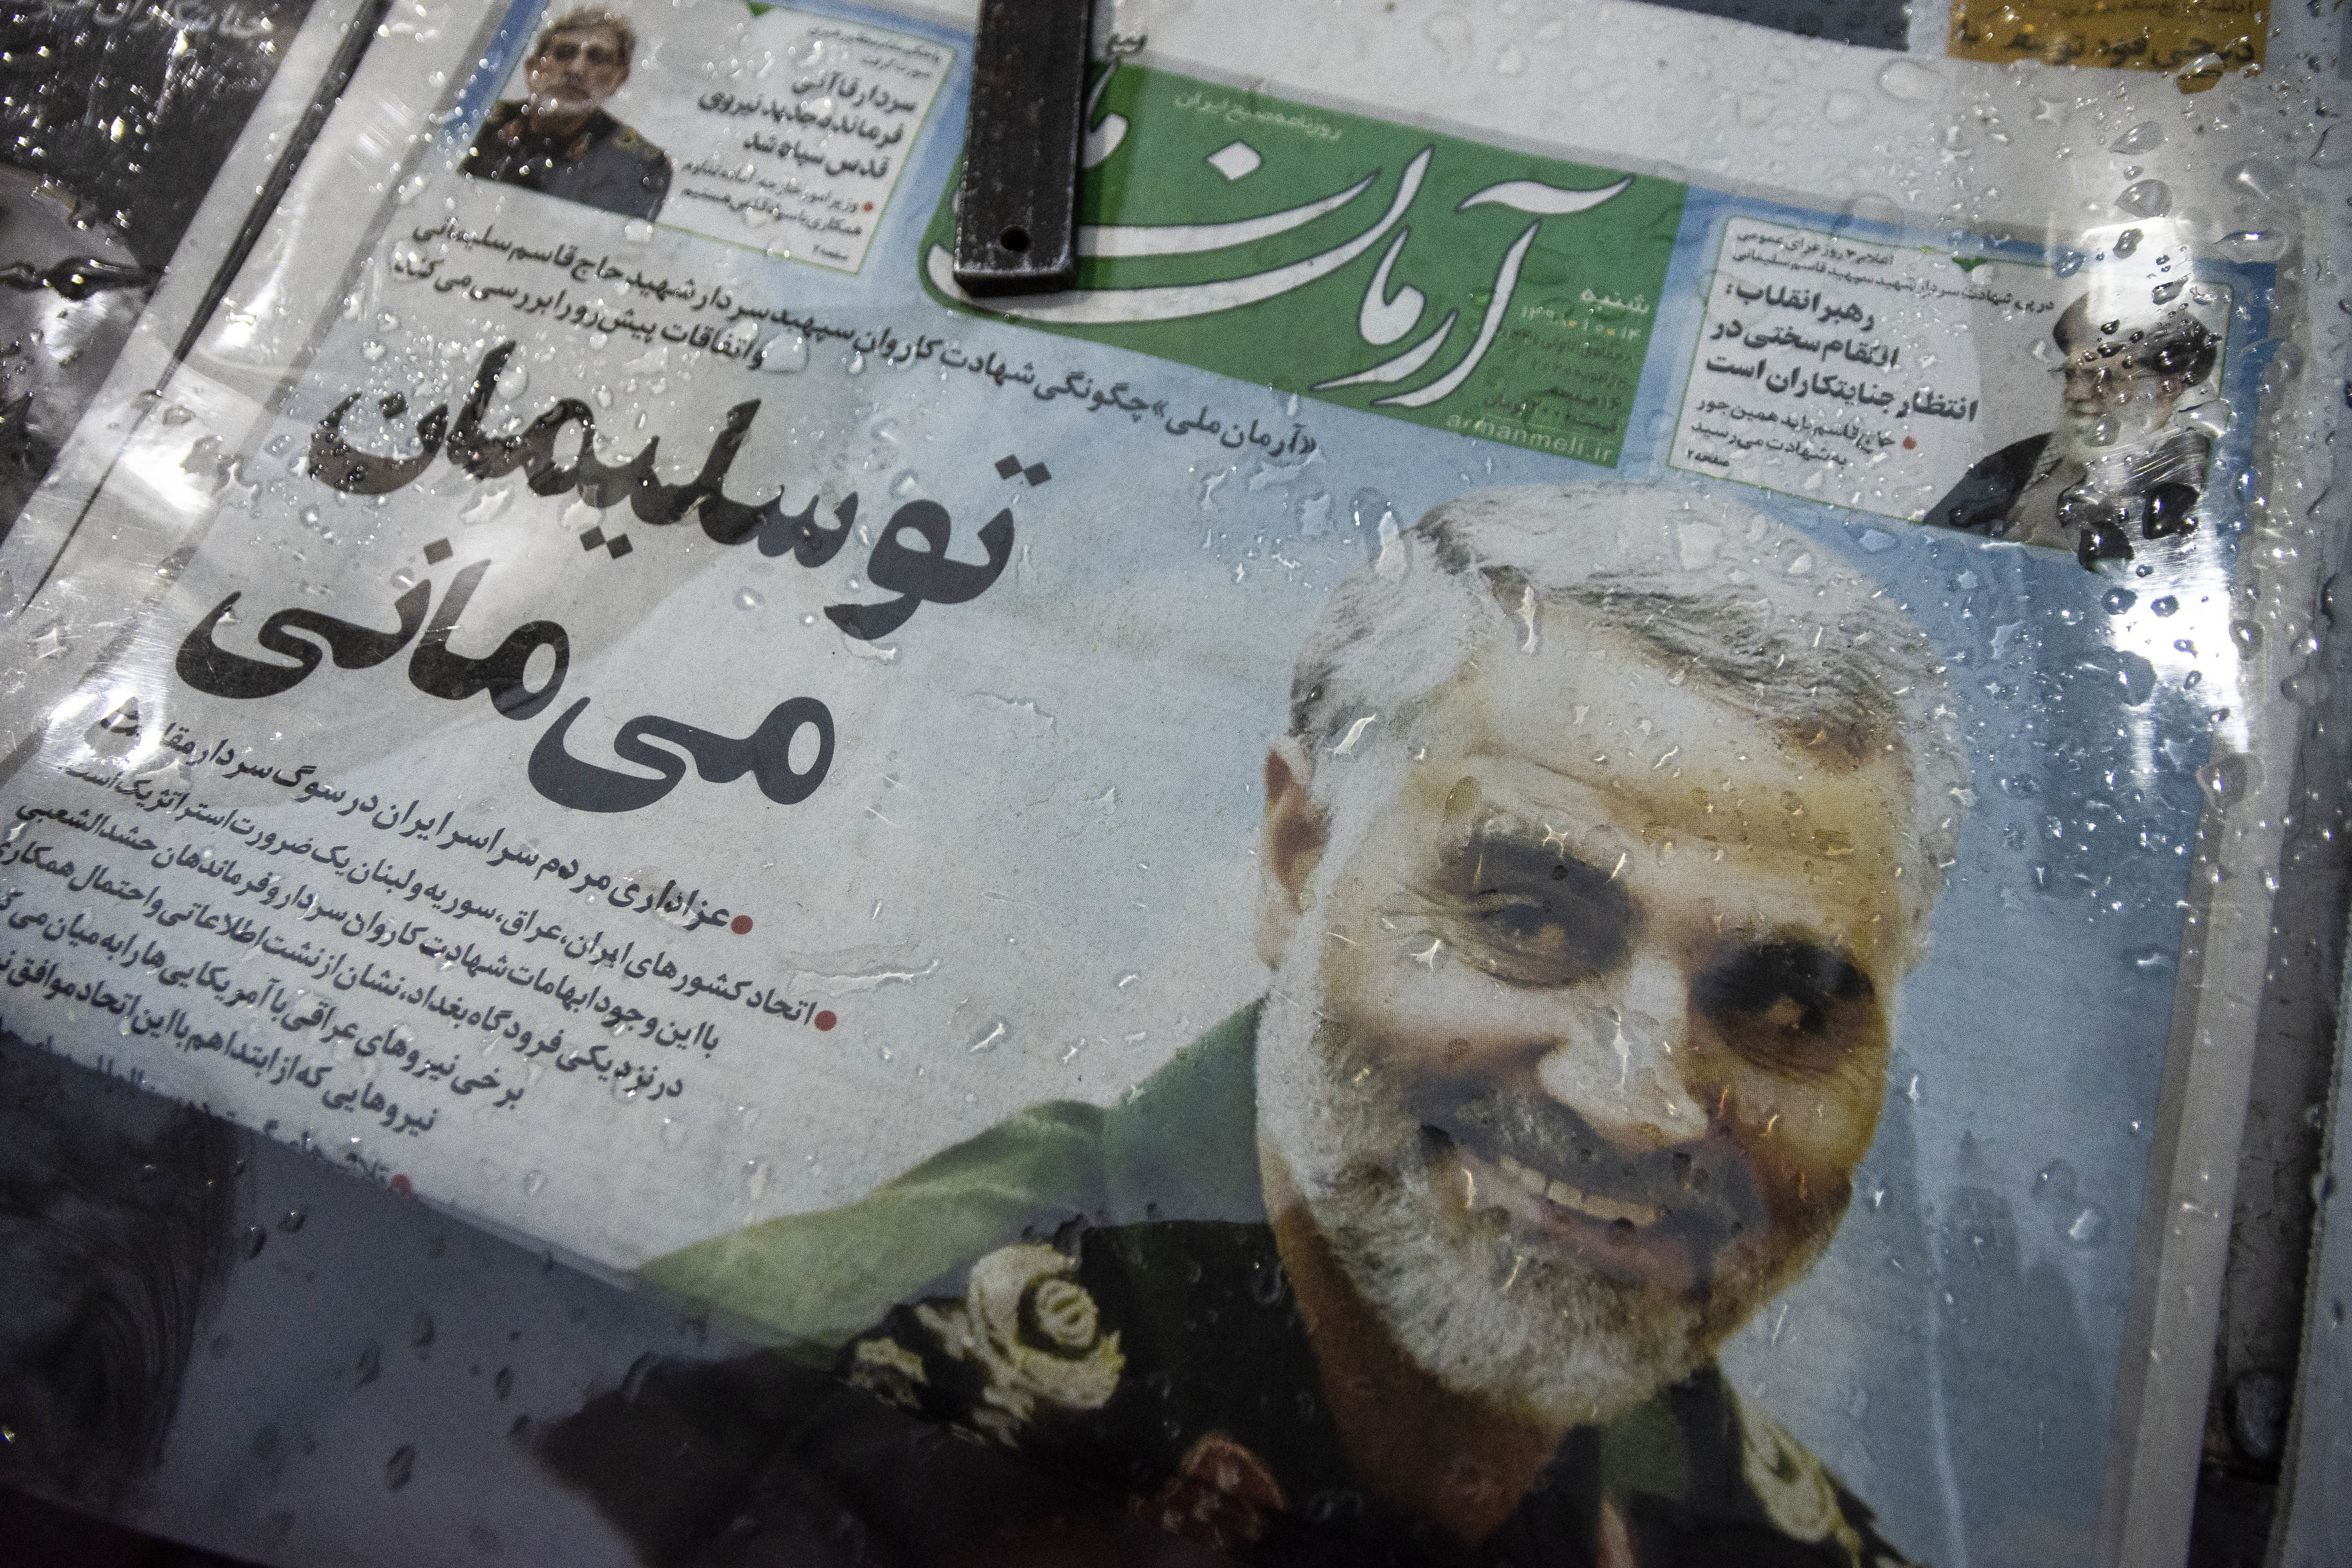 Image of General Qasem Soleimani on newspaper front page.